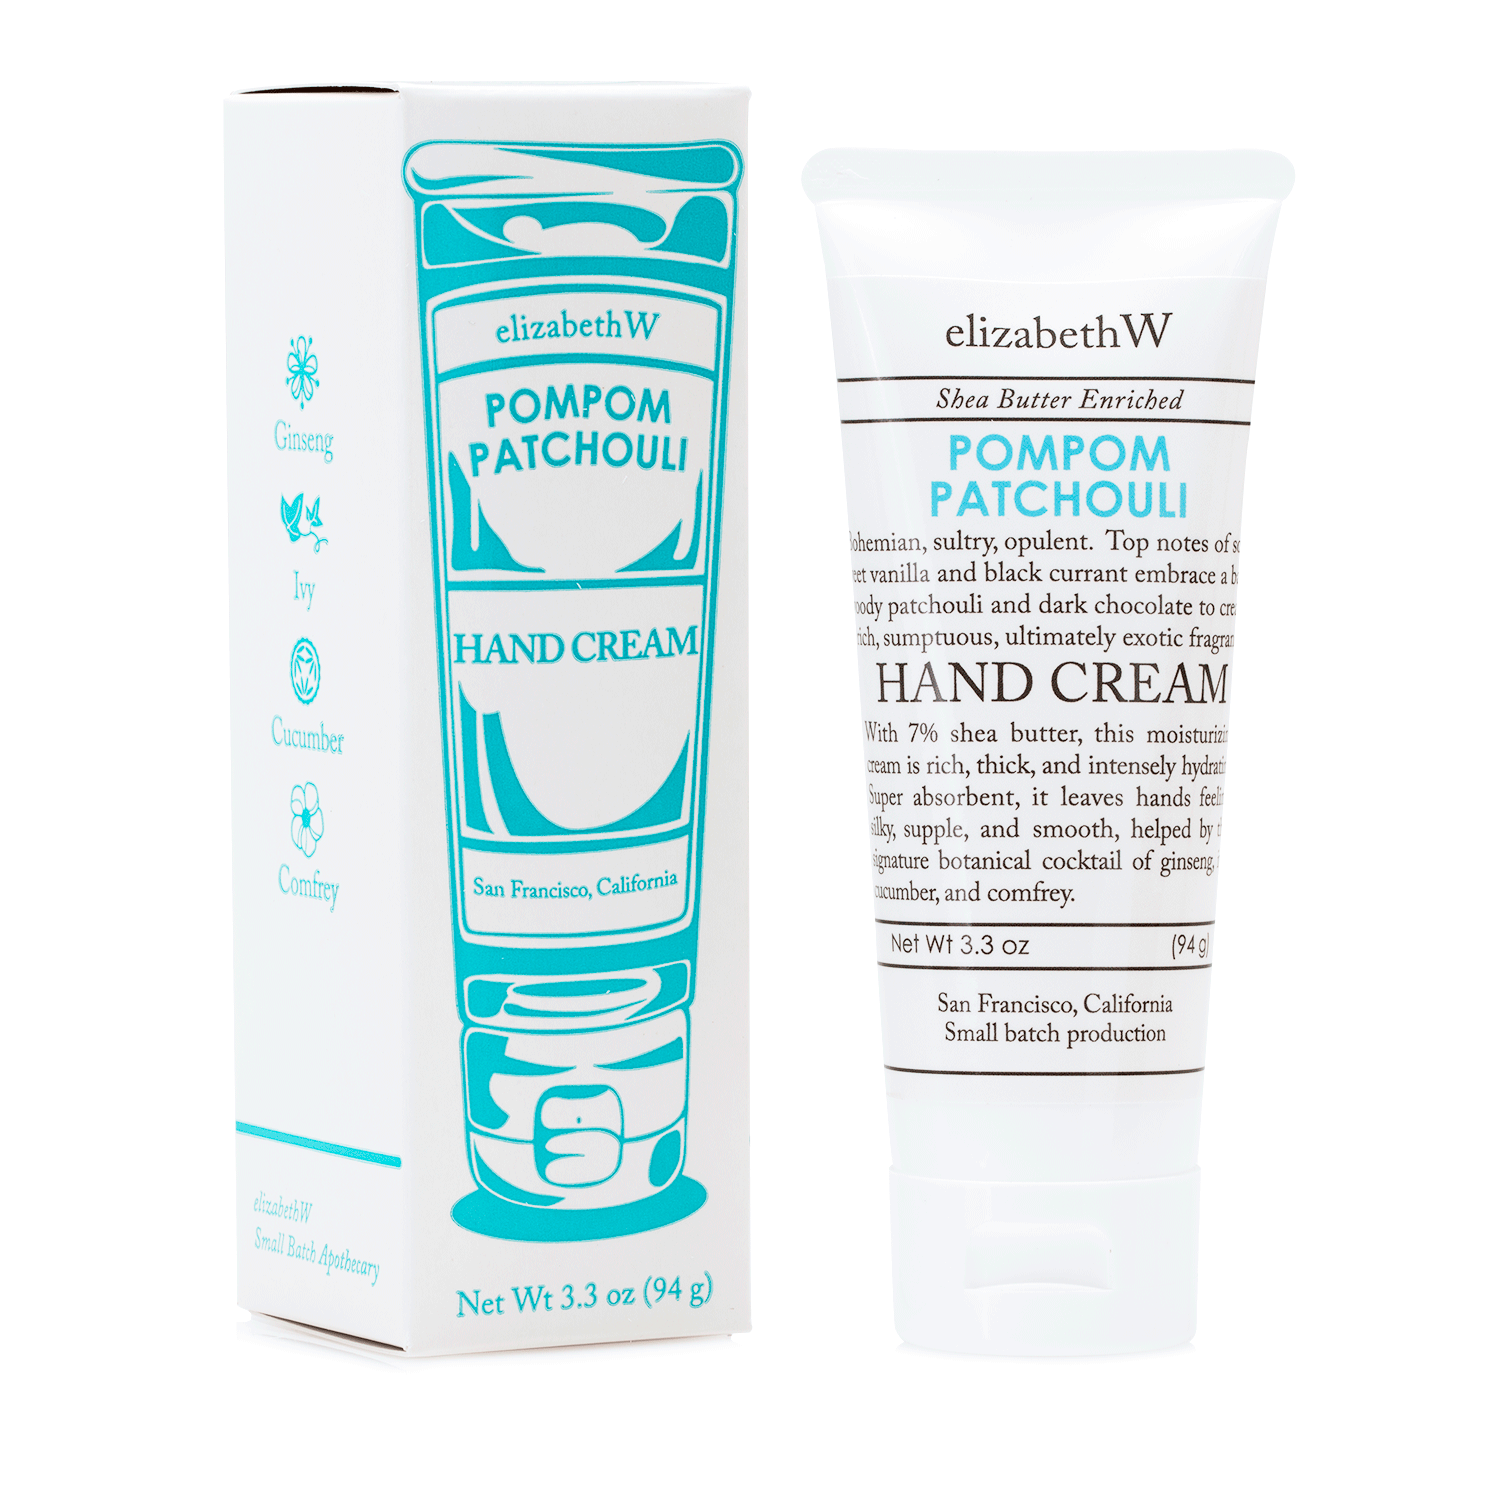 Pompom Patchouli Hand Cream